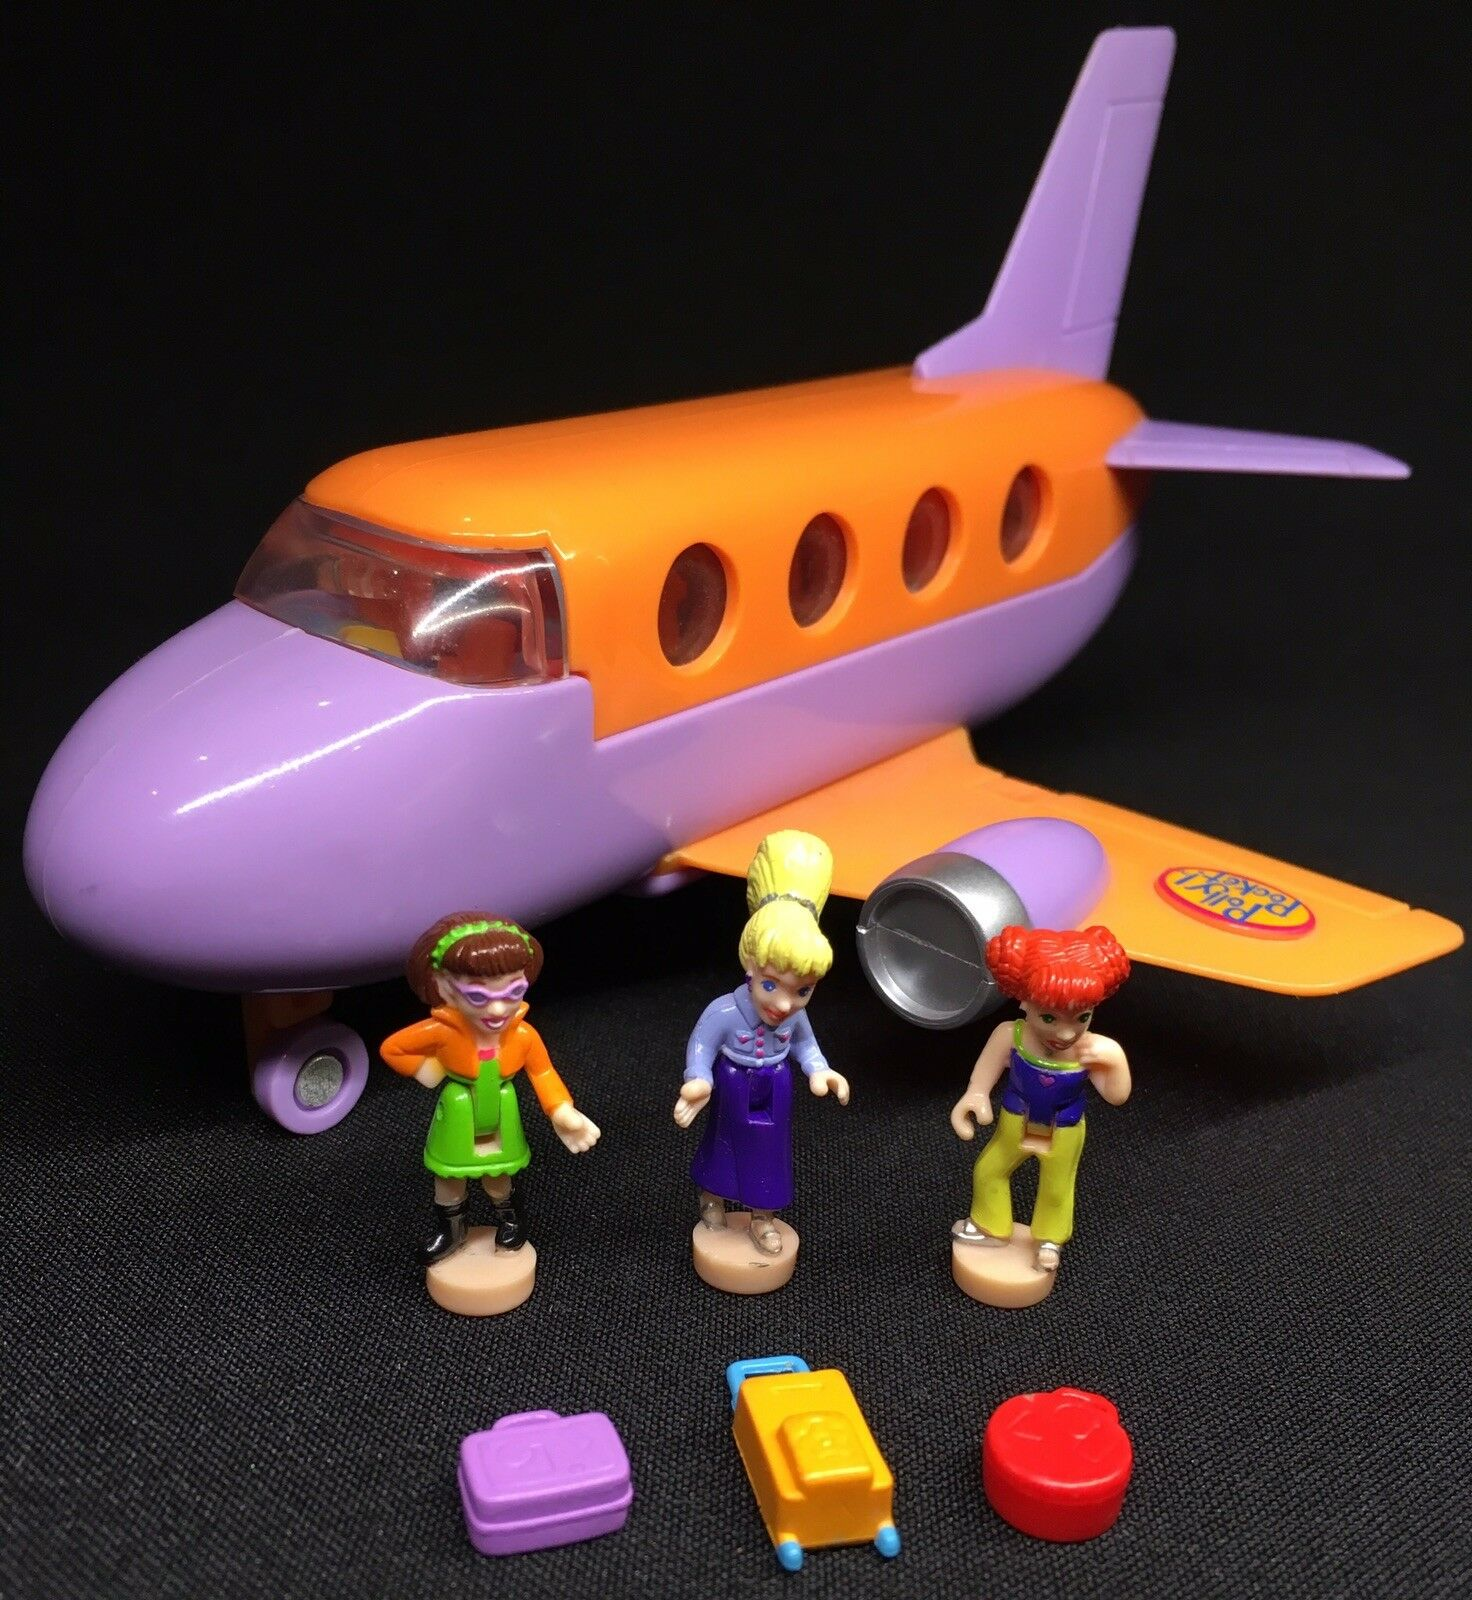 Polly Pocket   1998 Polly Pocket Tour Jet - - - Polly and the Pops Flugzeug 3001 41d7be